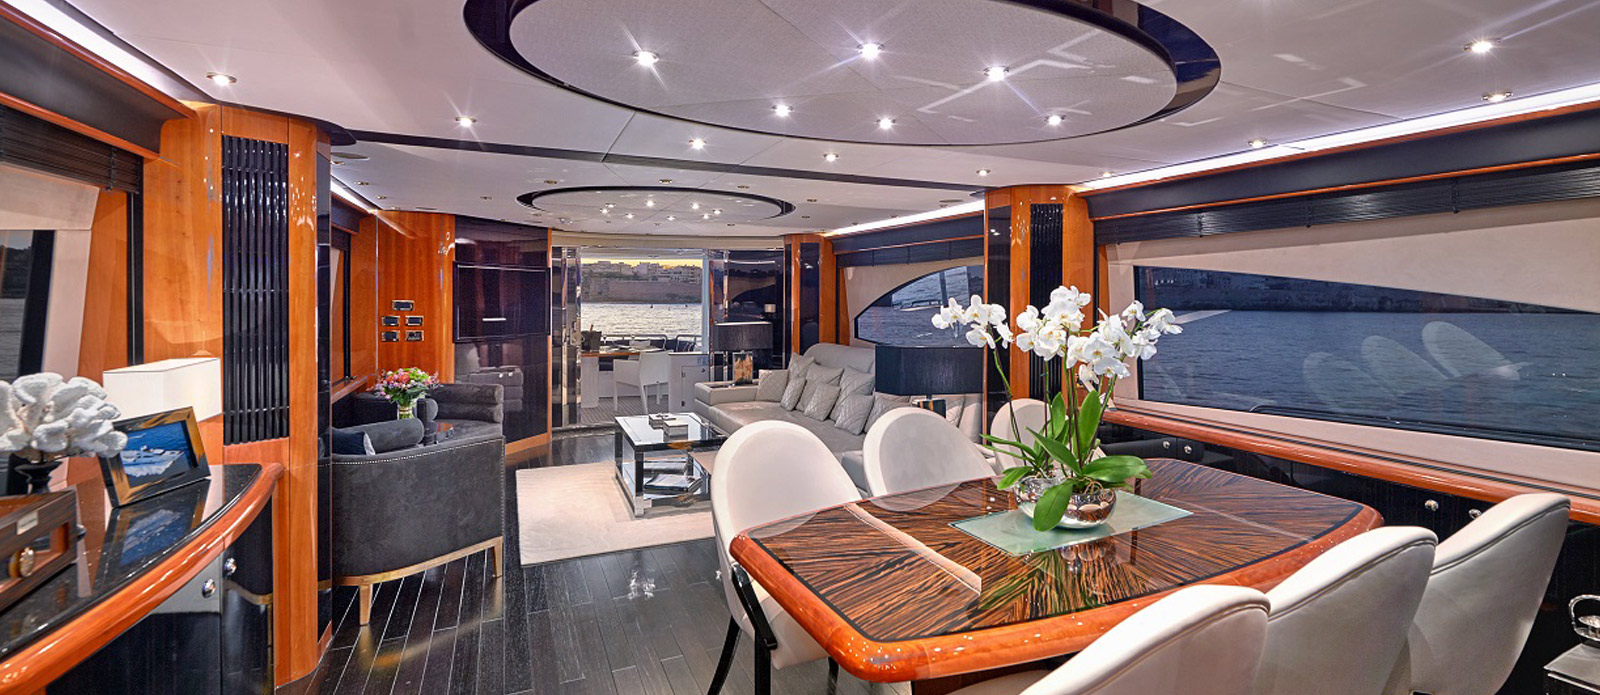 Sunseeker 94 Yacht - Pearl of London - Saloon Alternative Angle